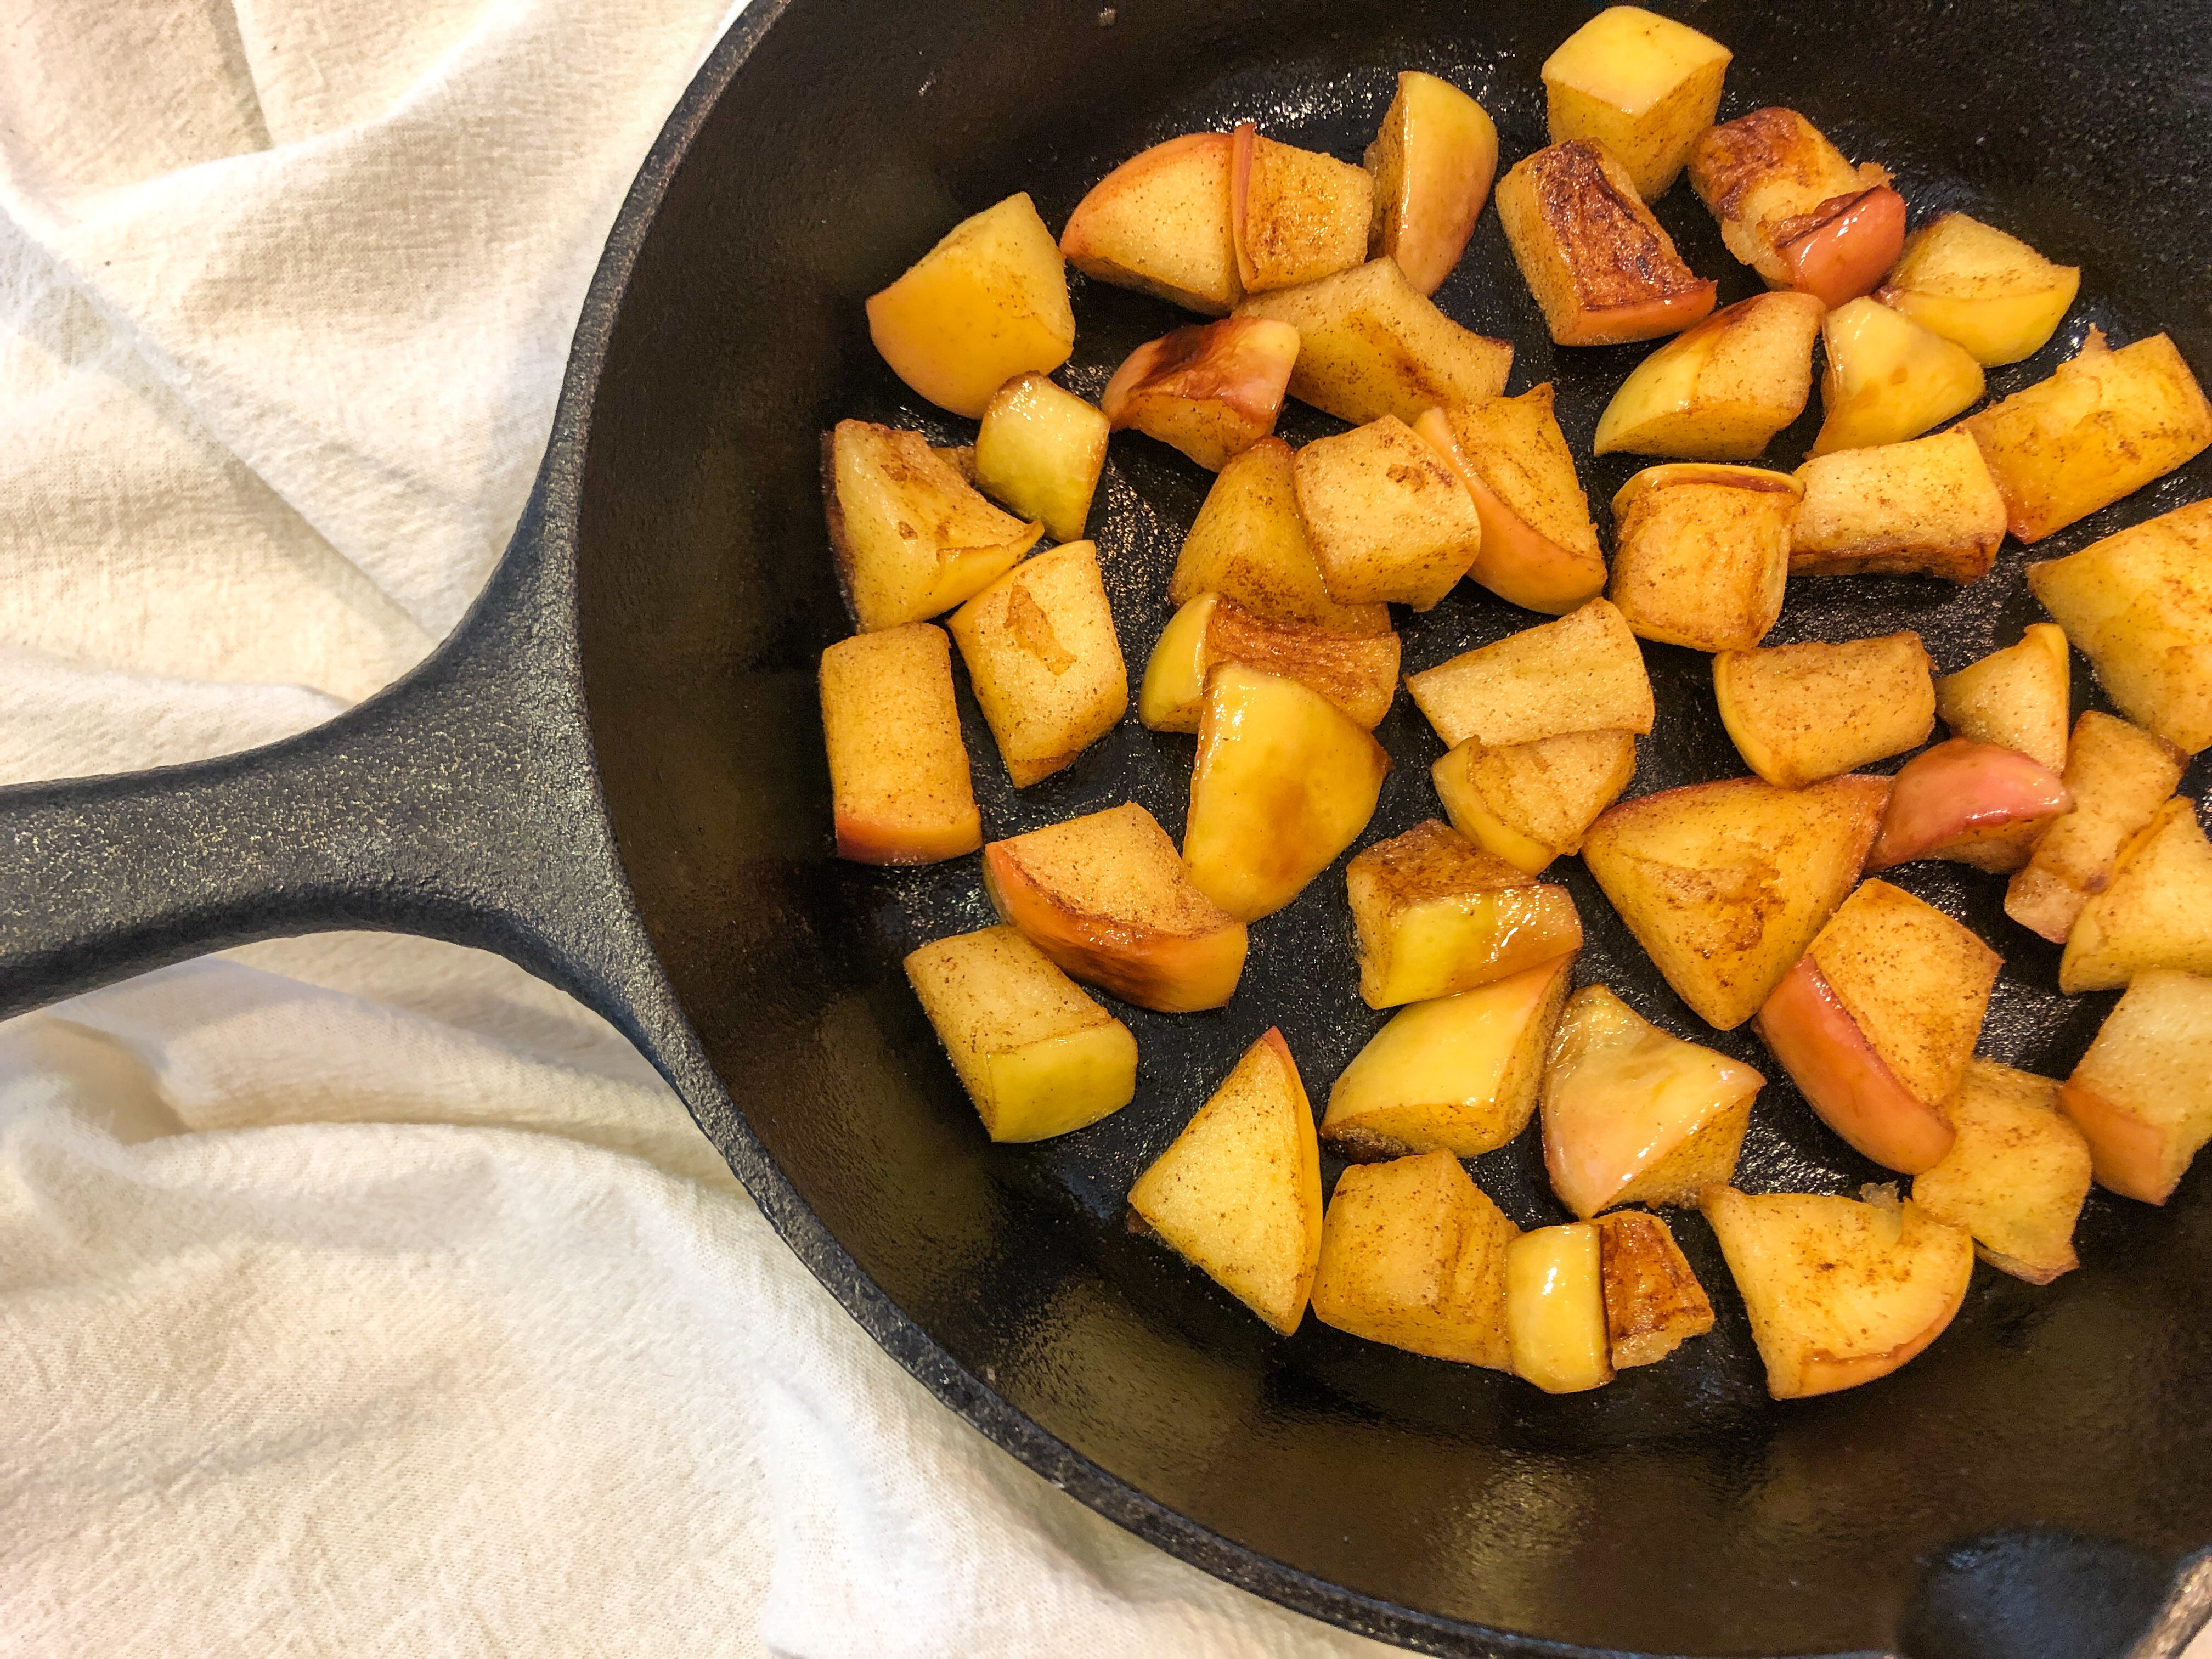 Easy Skillet Double Vanilla Cinnamon Apples Recipe - Easy, delicious spiced apples with a double dose of vanilla! These apples taste like warm apple pie, except they are so simple to make and much healthier. Perfect served with ice cream or yogurt, over pancakes or waffles, and stirred into oatmeal! Dairy-free, gluten-free, grain-free, and refined sugar-free.